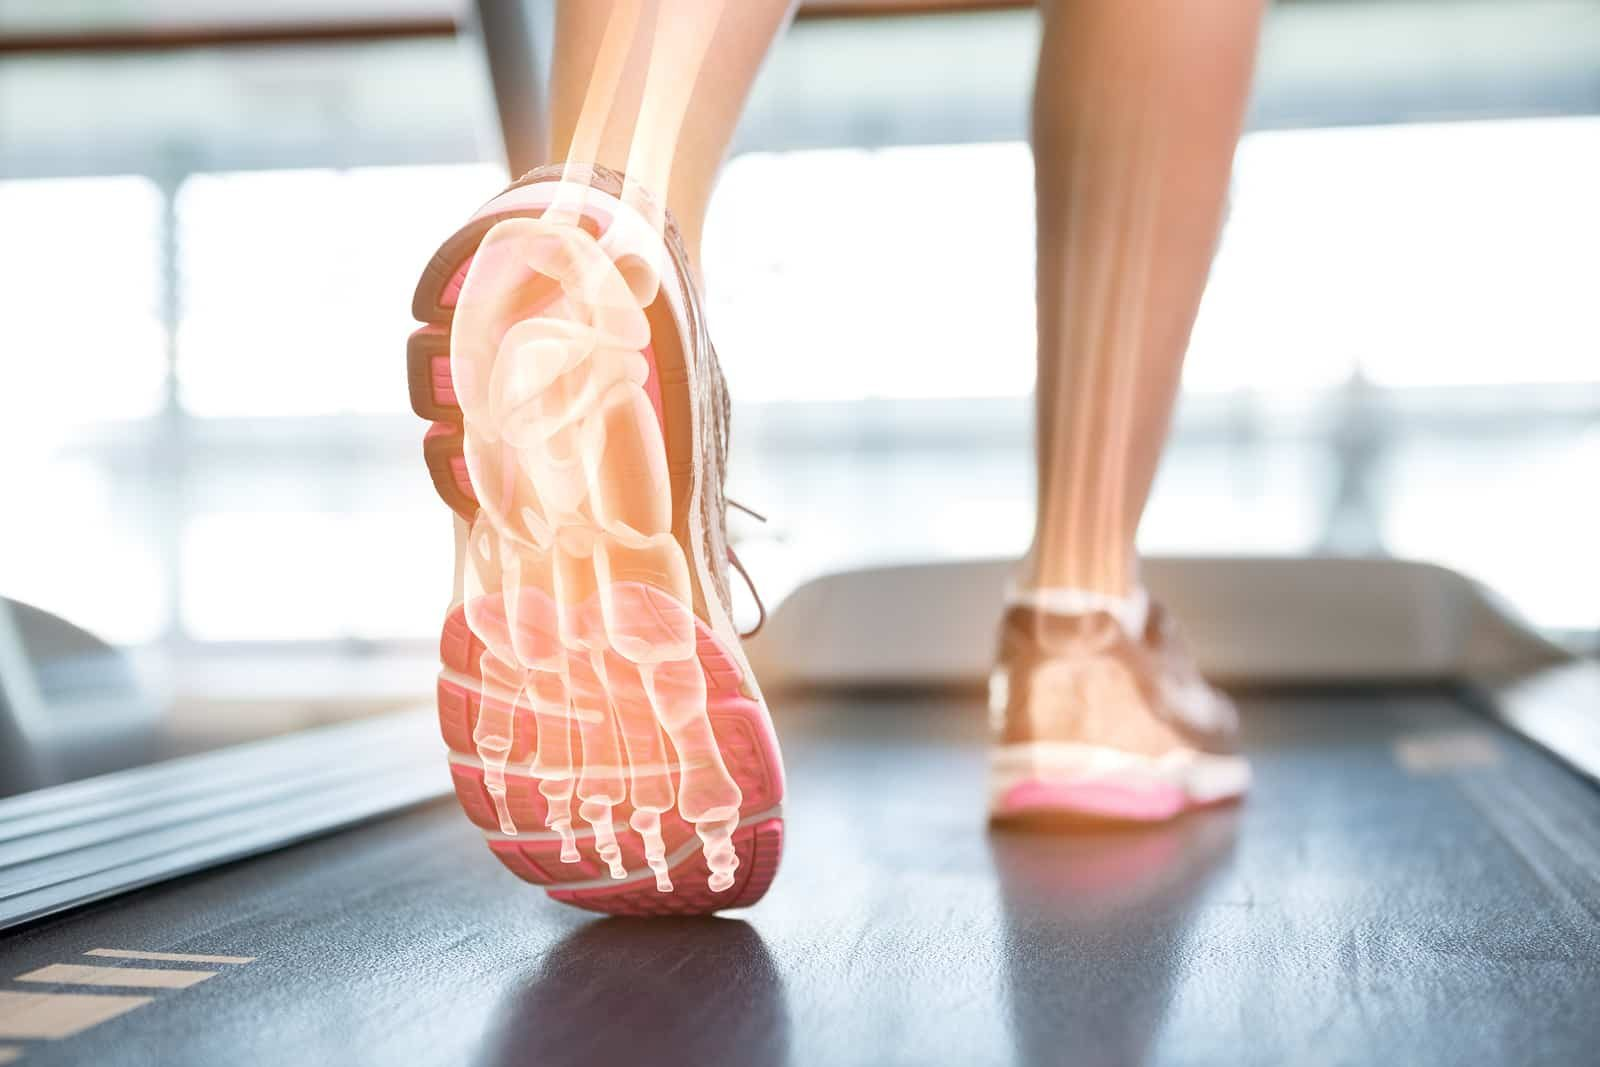 Proper foot biomechanics and prevent unwanted injuries